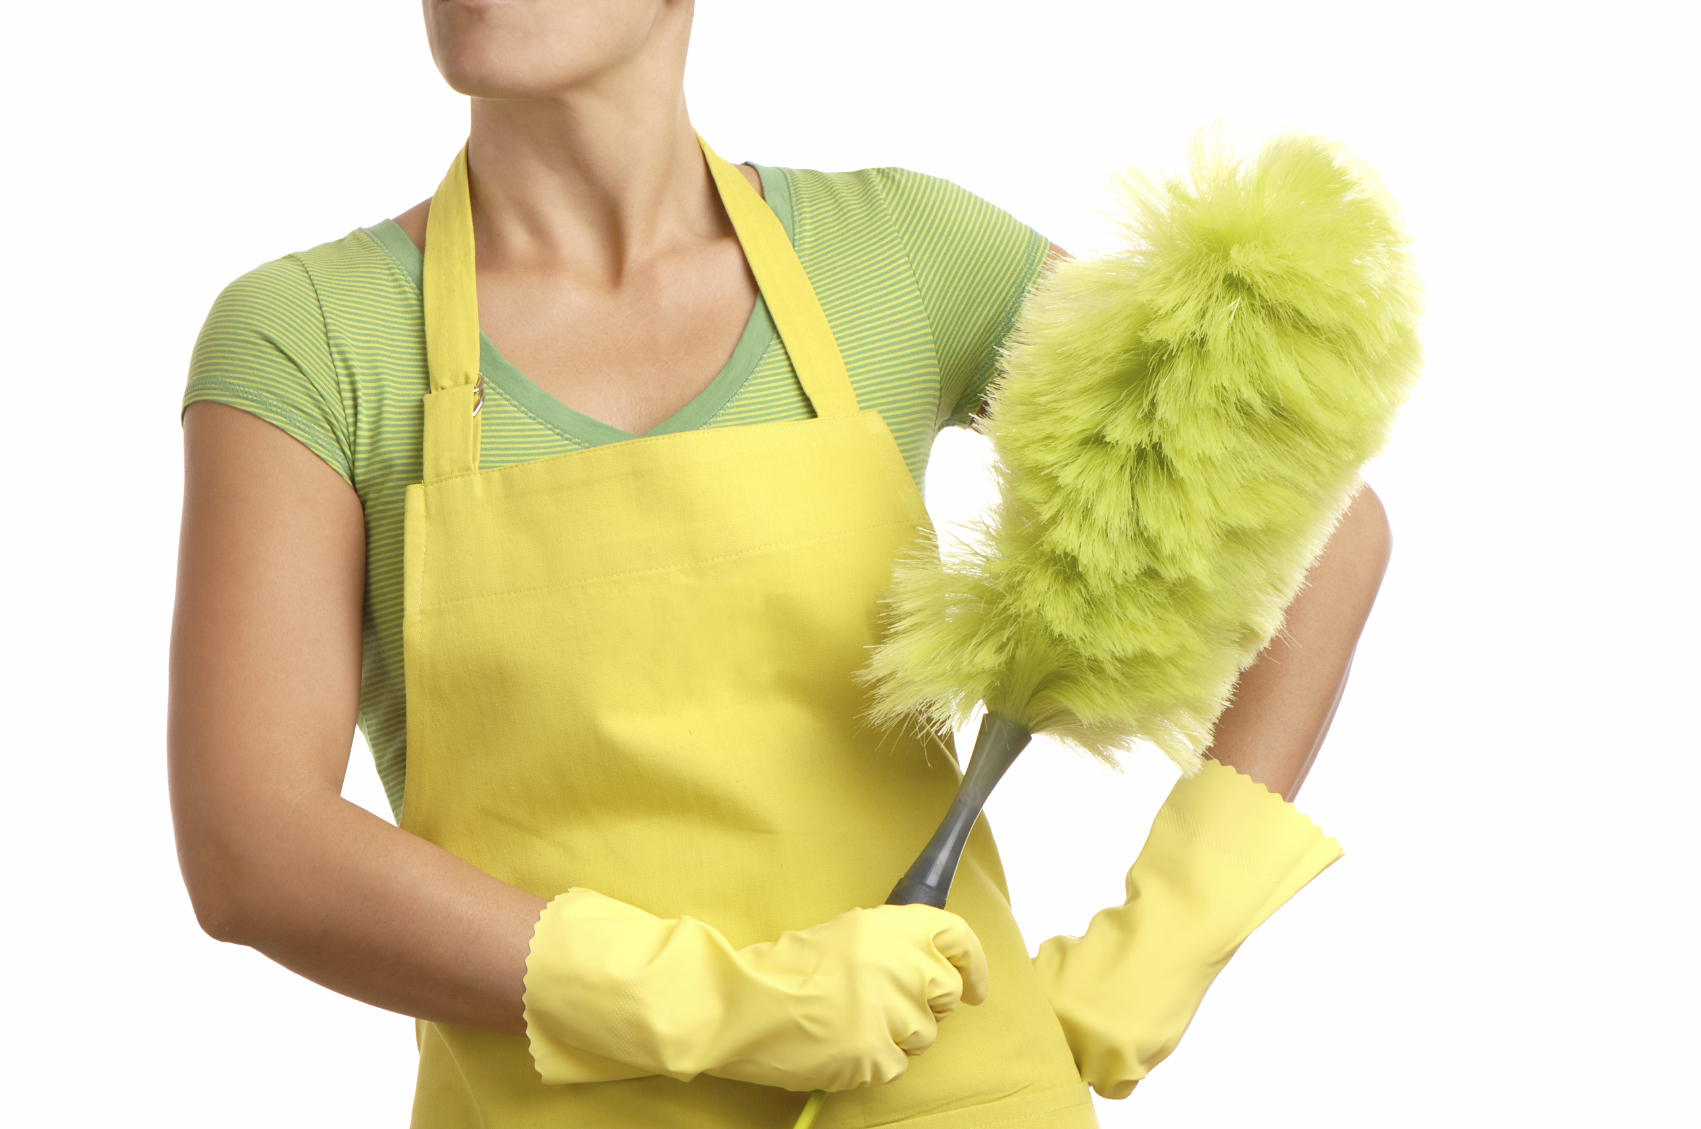 A woman holding a green feather duster